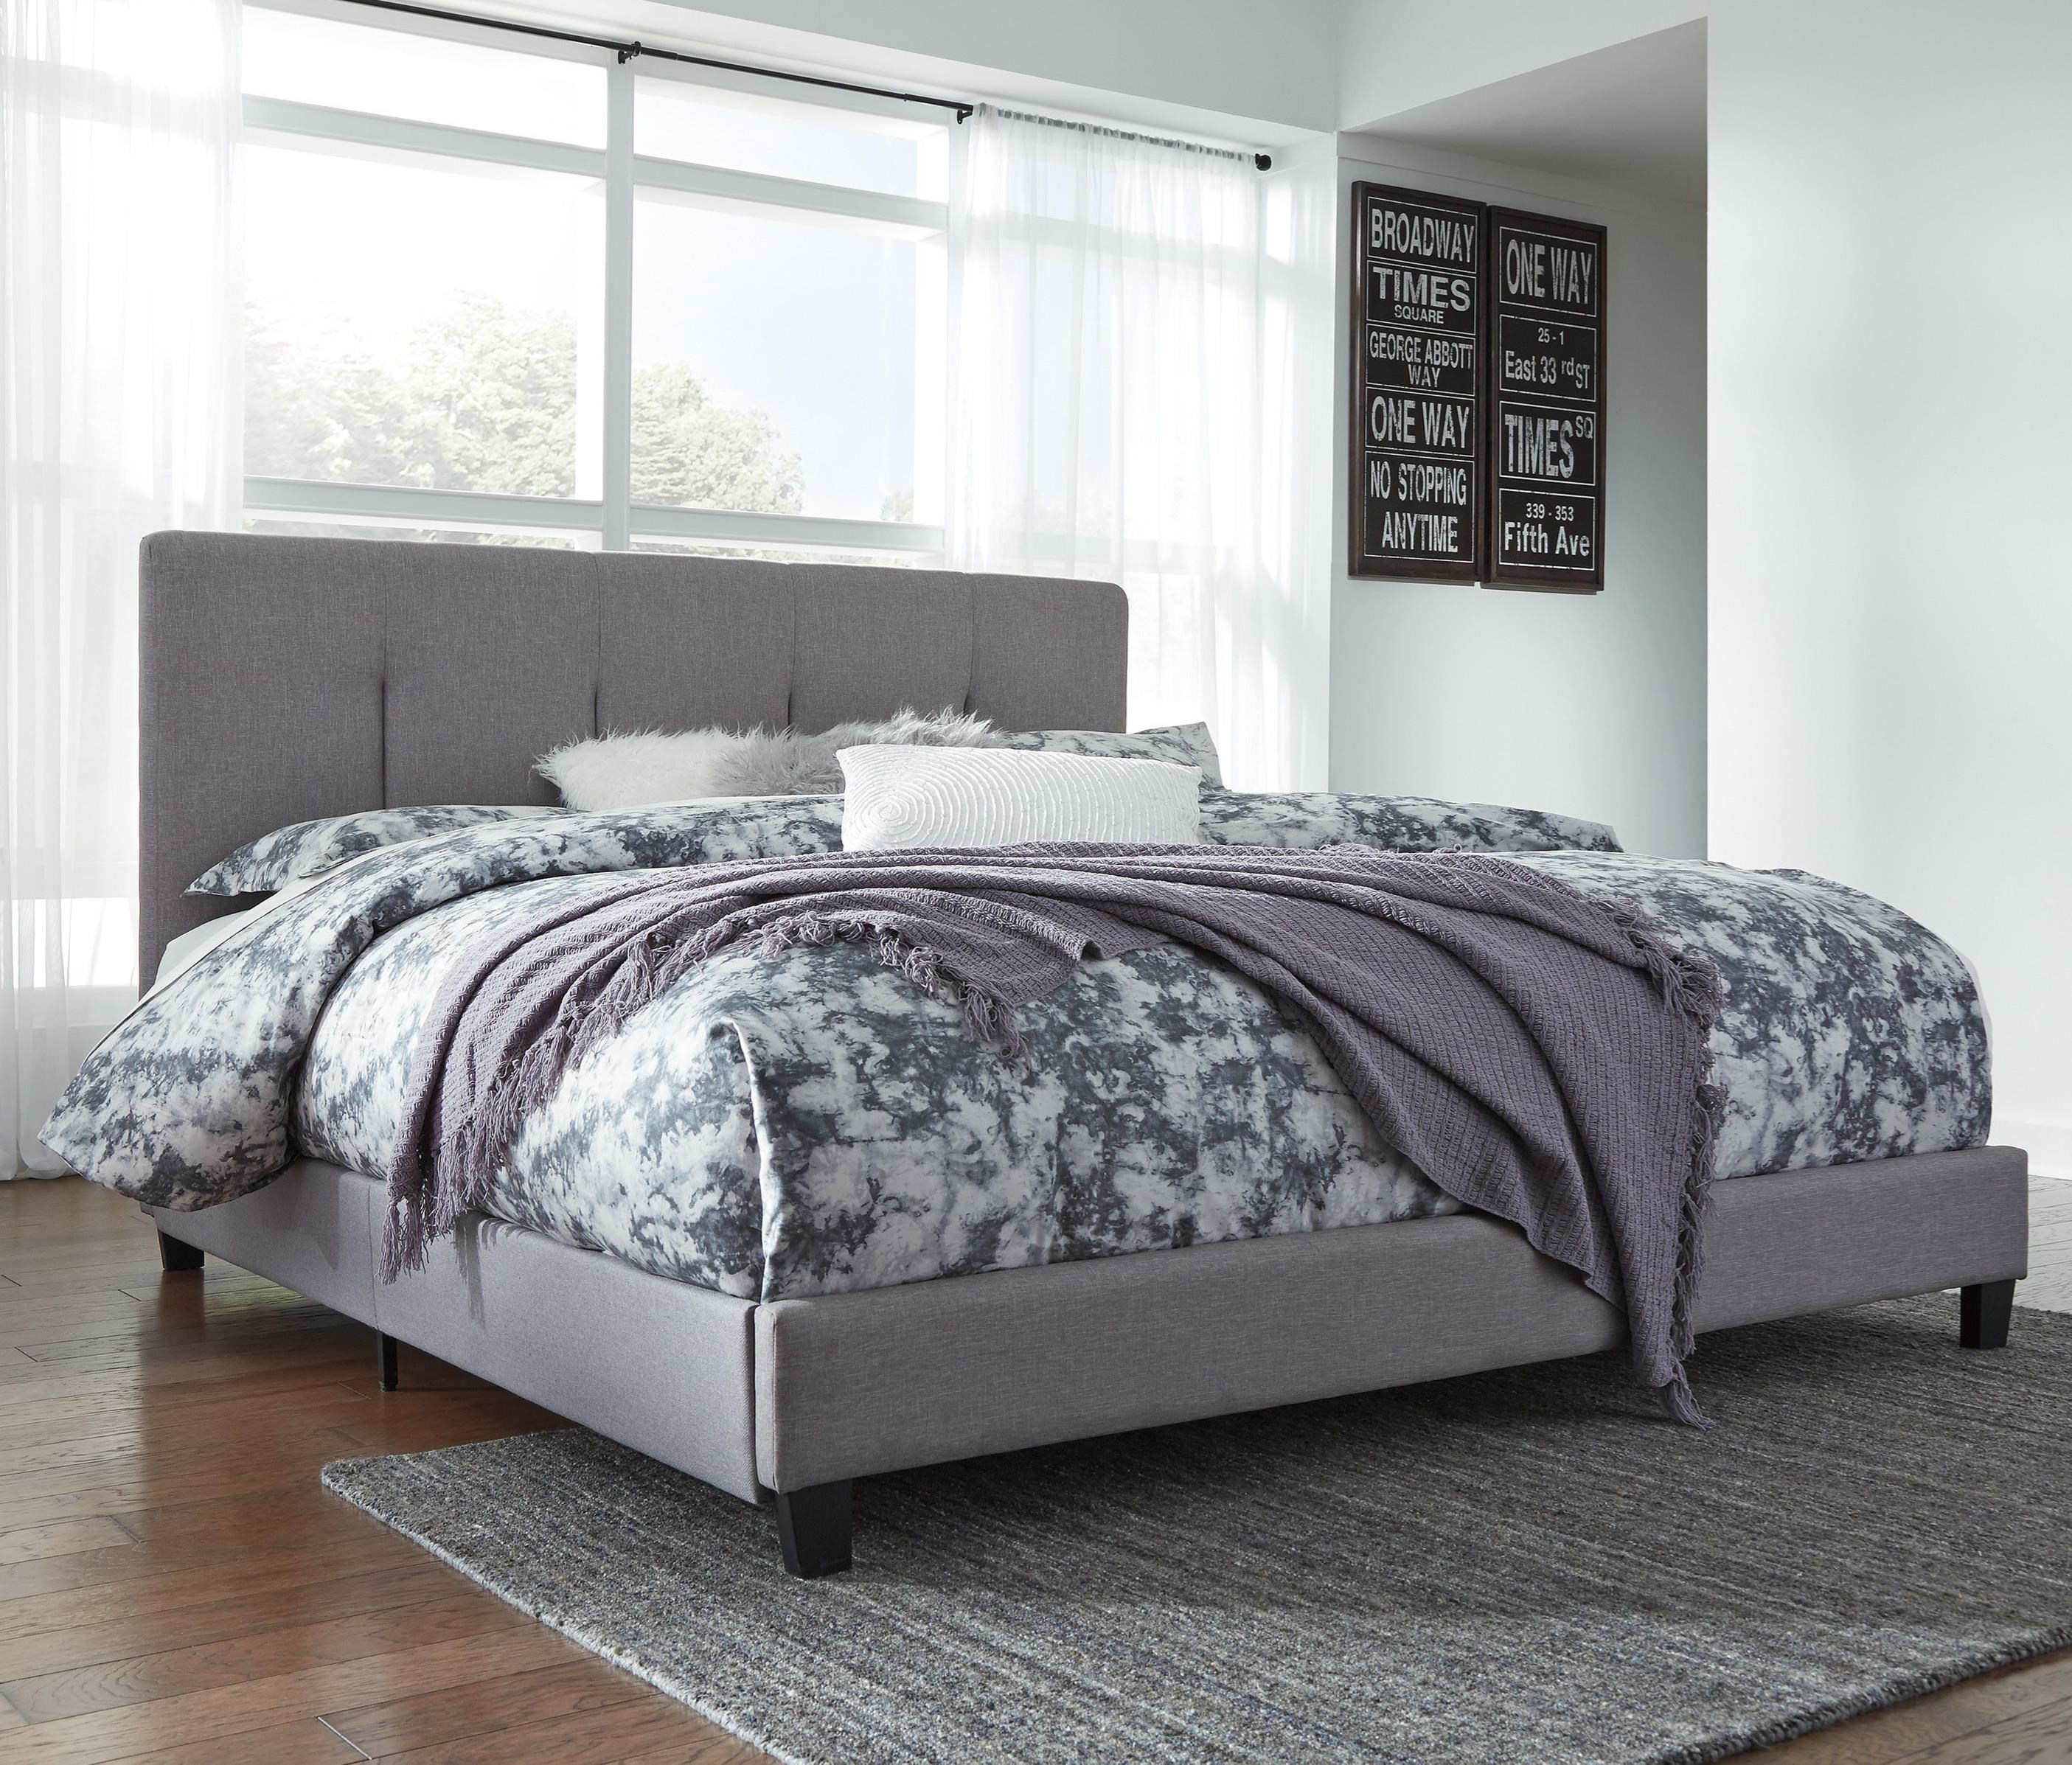 Dolante King Upholstered Bed With Channel Tufting Amp Gray